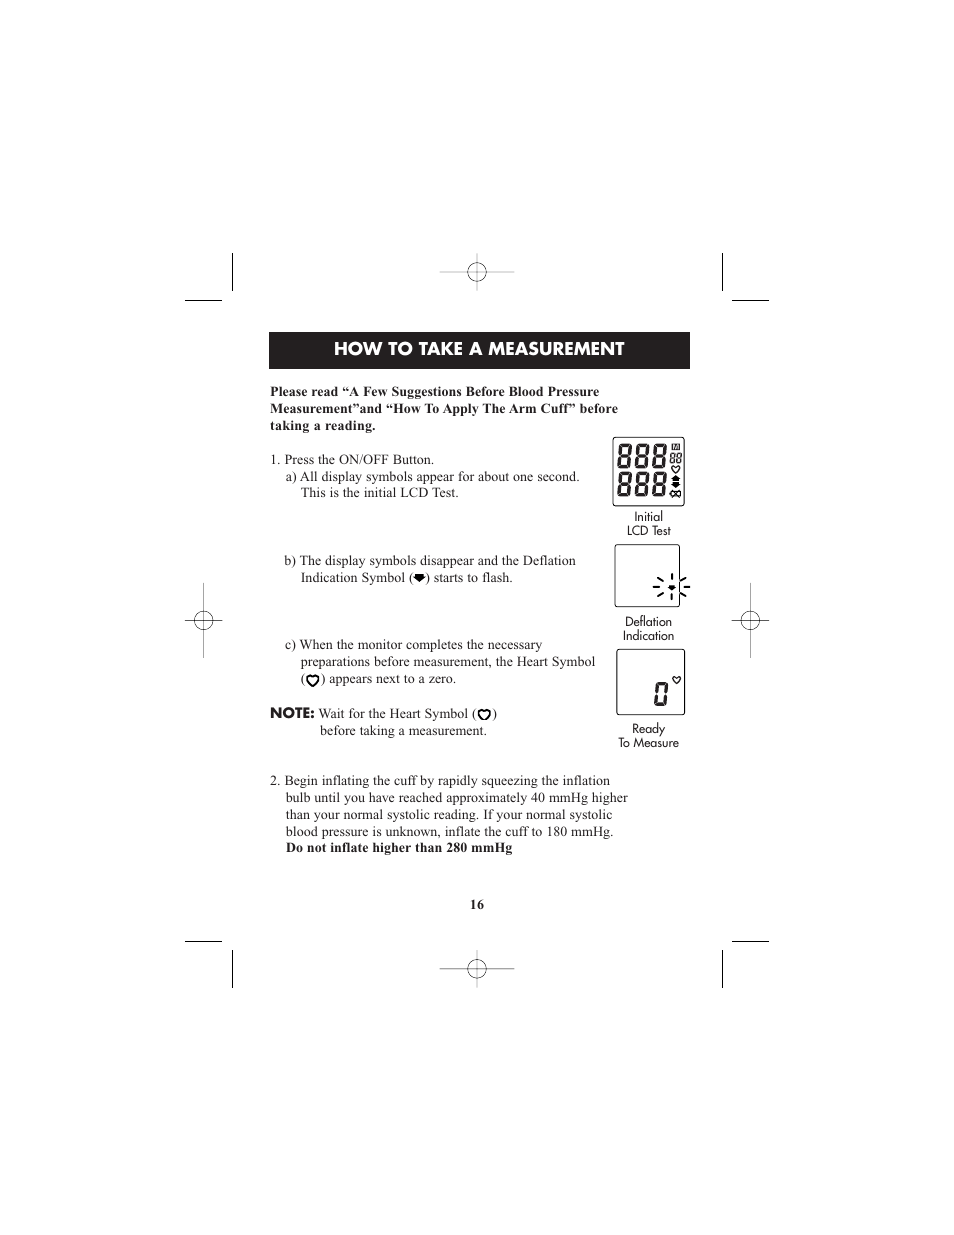 How To Take A Measurement Relion Hem 412crel User Manual Page 16